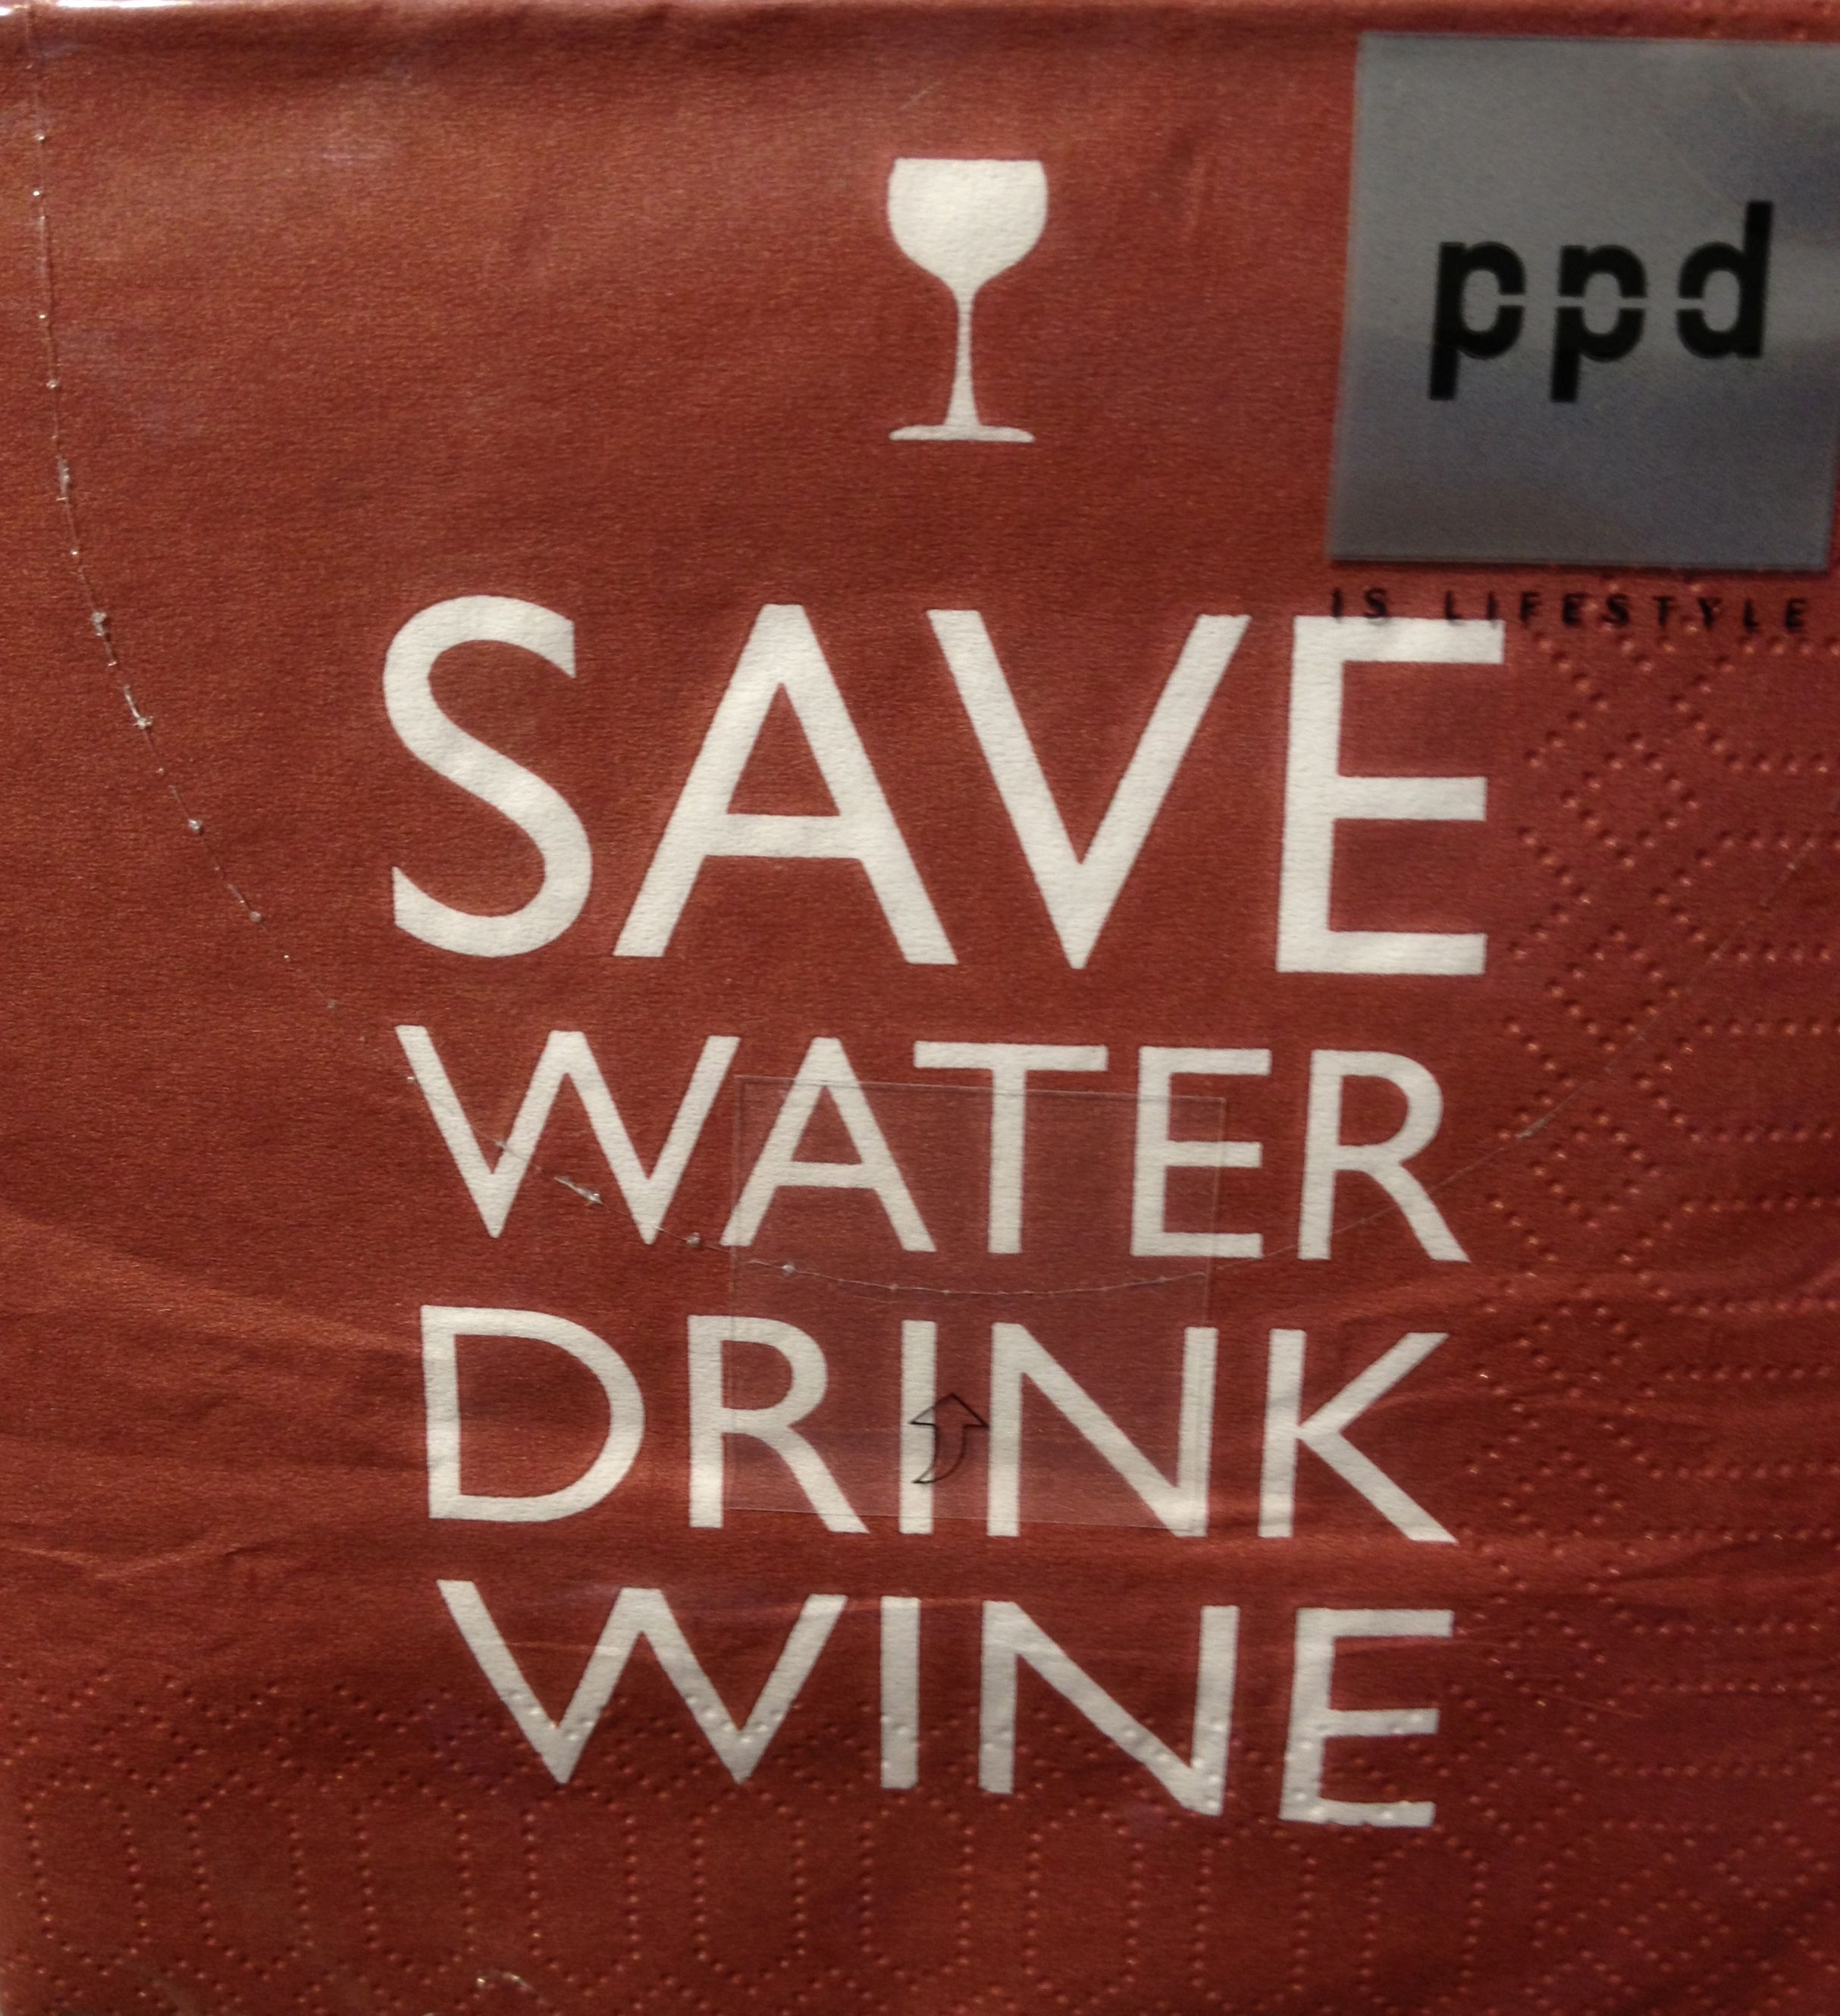 Funny Cocktail Napkins Save Water Drink Wine From Memento Gift Shop Palm Springs 760 325 1963 Save Water Drink Wine Funny Cocktails Funny Cocktail Napkins